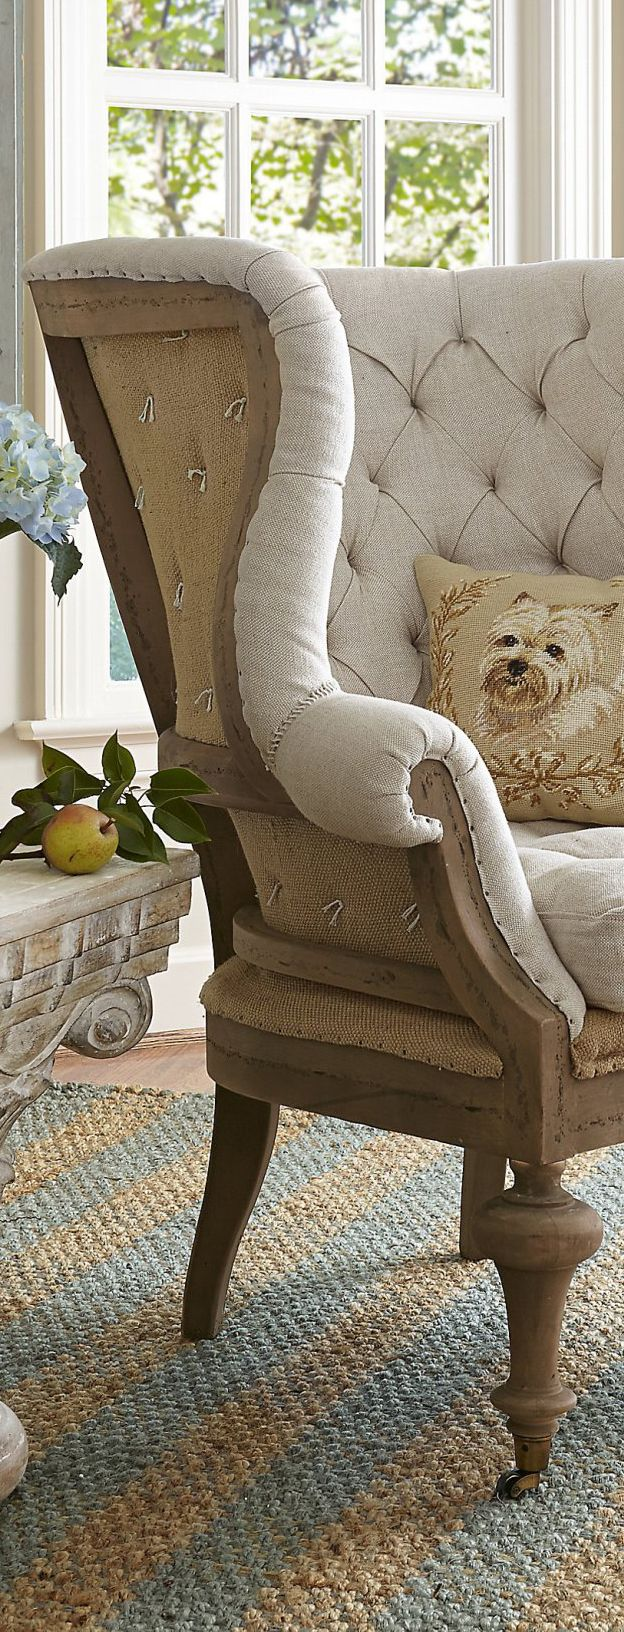 Fancy chairs fancy cardboard chairson home interior design ideas with - Soft Surroundings Has A Gorgeous Collection Of Home Bedding Luxury Linens Divine French Inspired Furniture And Incredibly Soft Women S Clothing